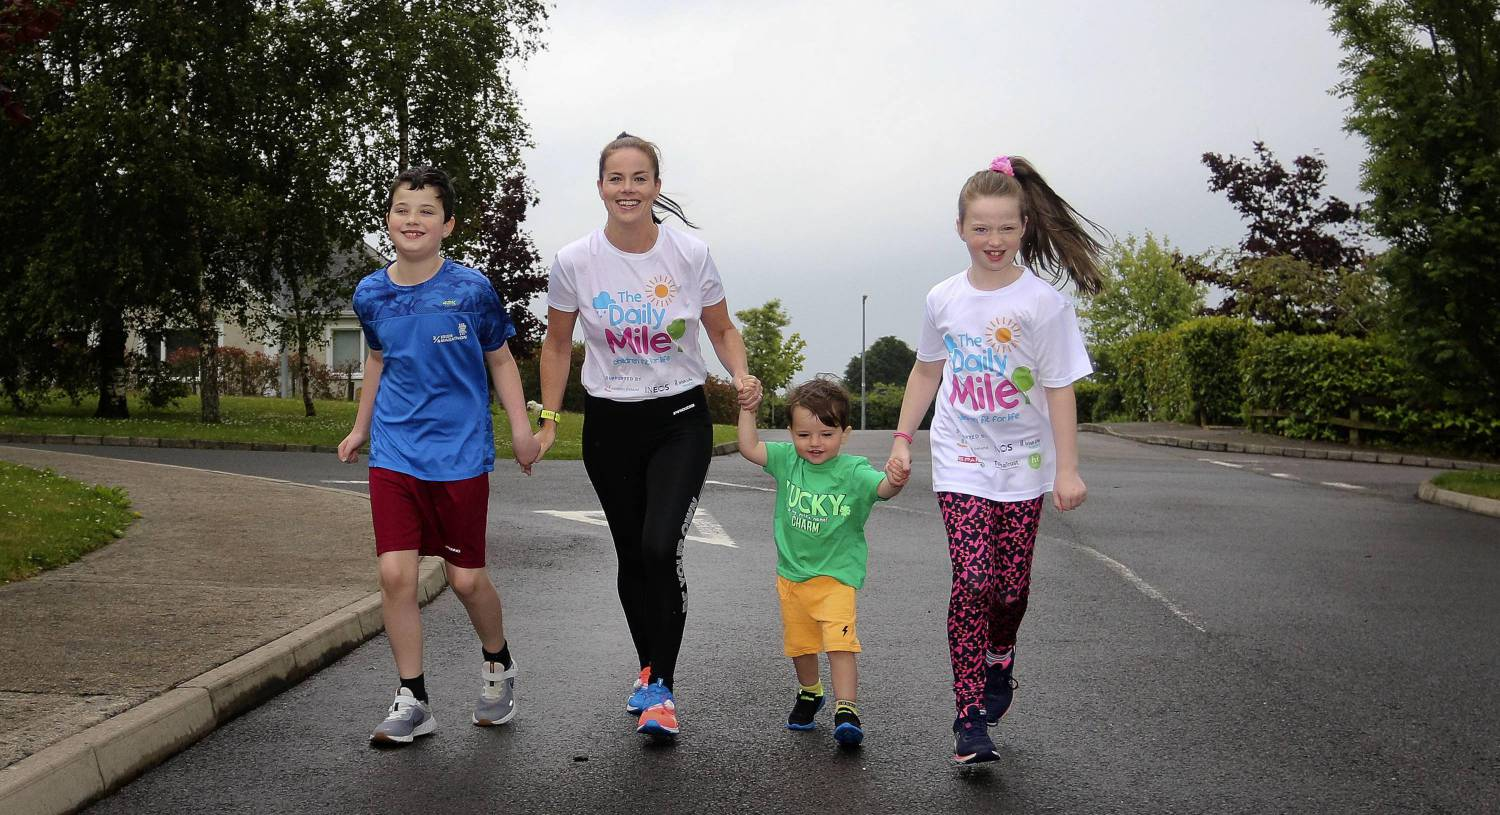 Going the extra mile: Children's exercise initiative aims to tackle growing obesity problem